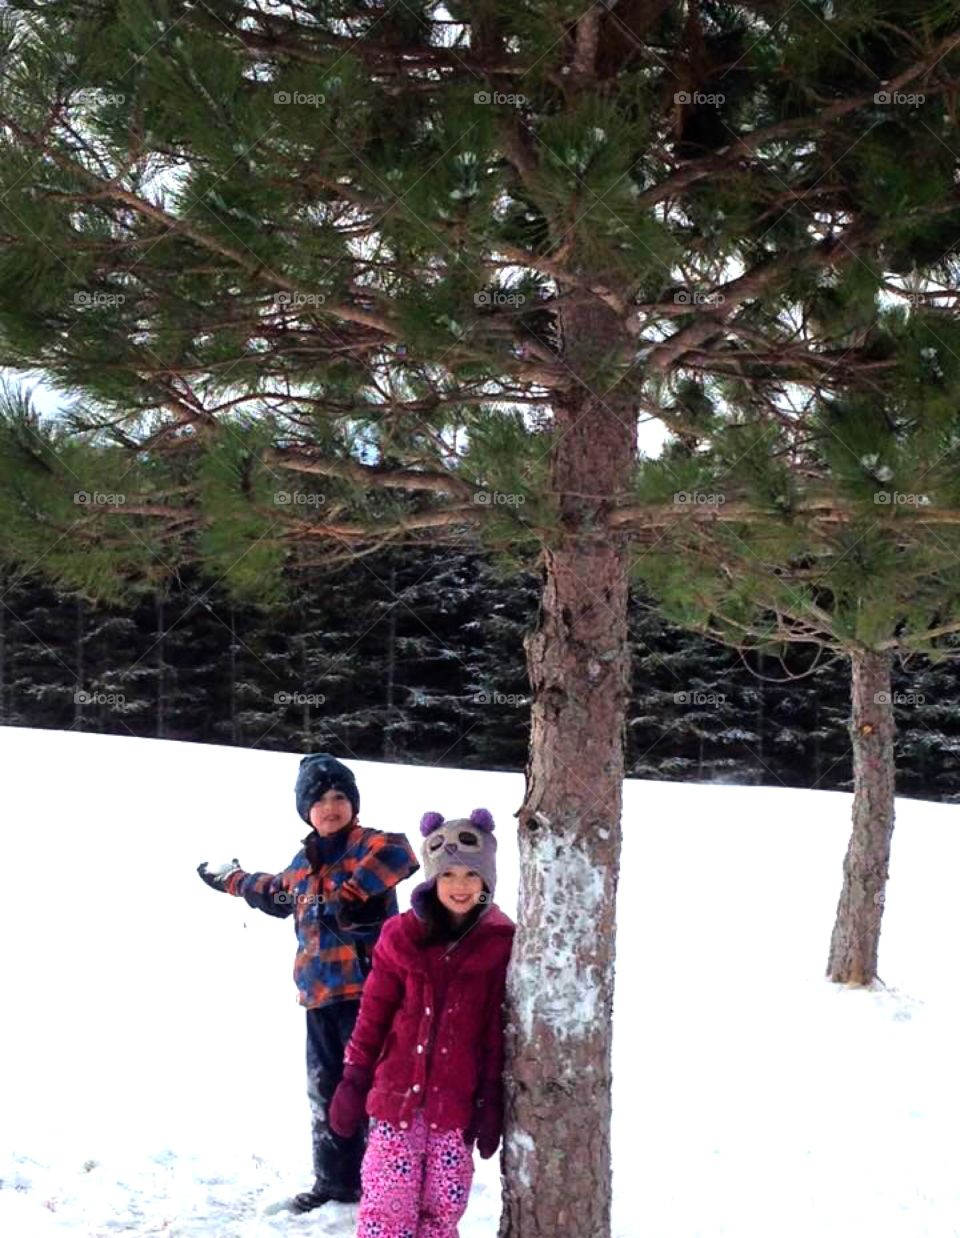 Kids playing in the snow standing under a pine tree. Boy ready to throw a snowball.